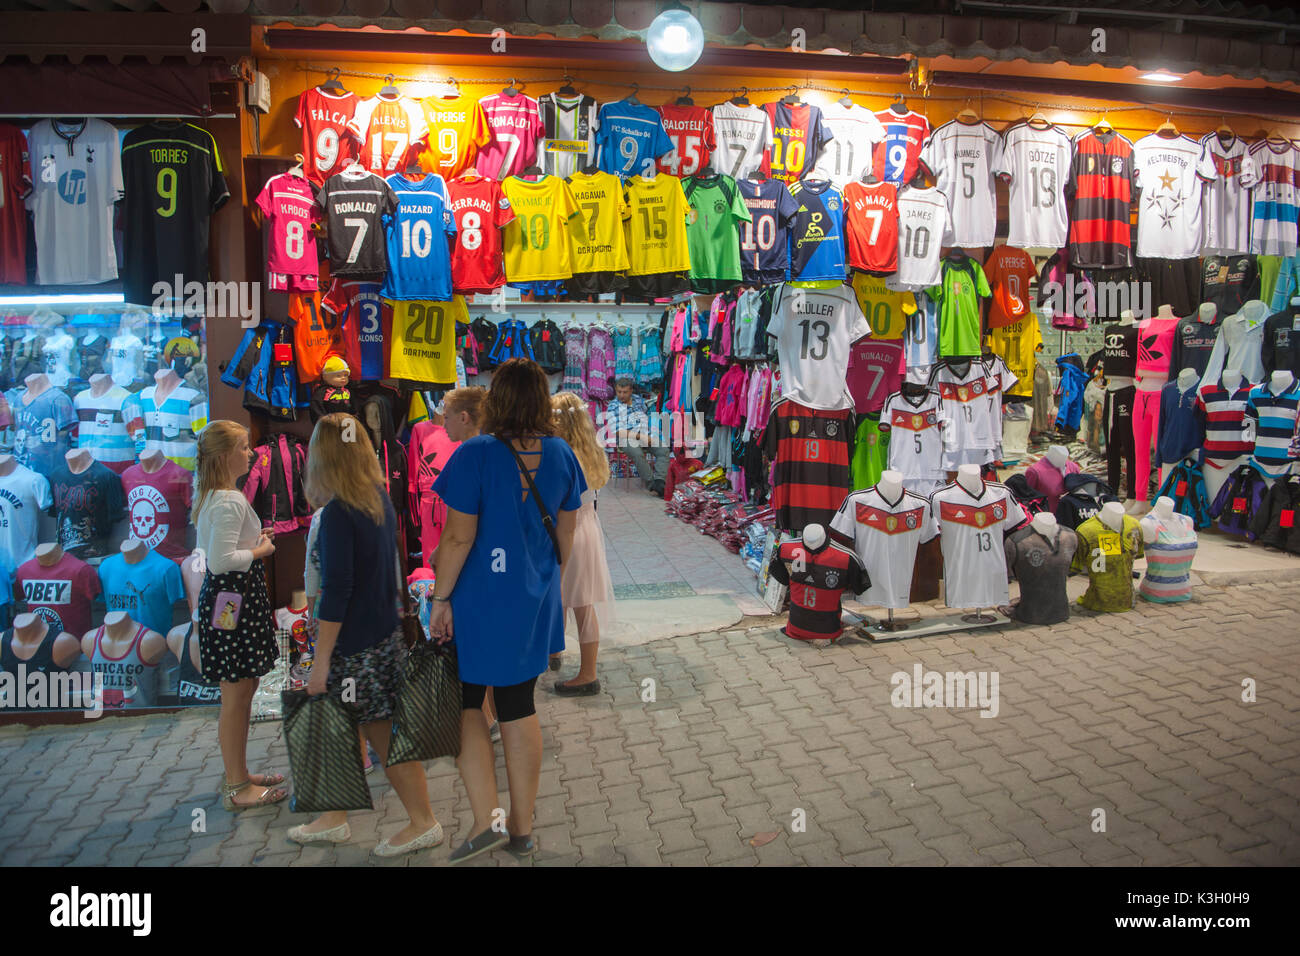 Shopping in Turkey - a popular event